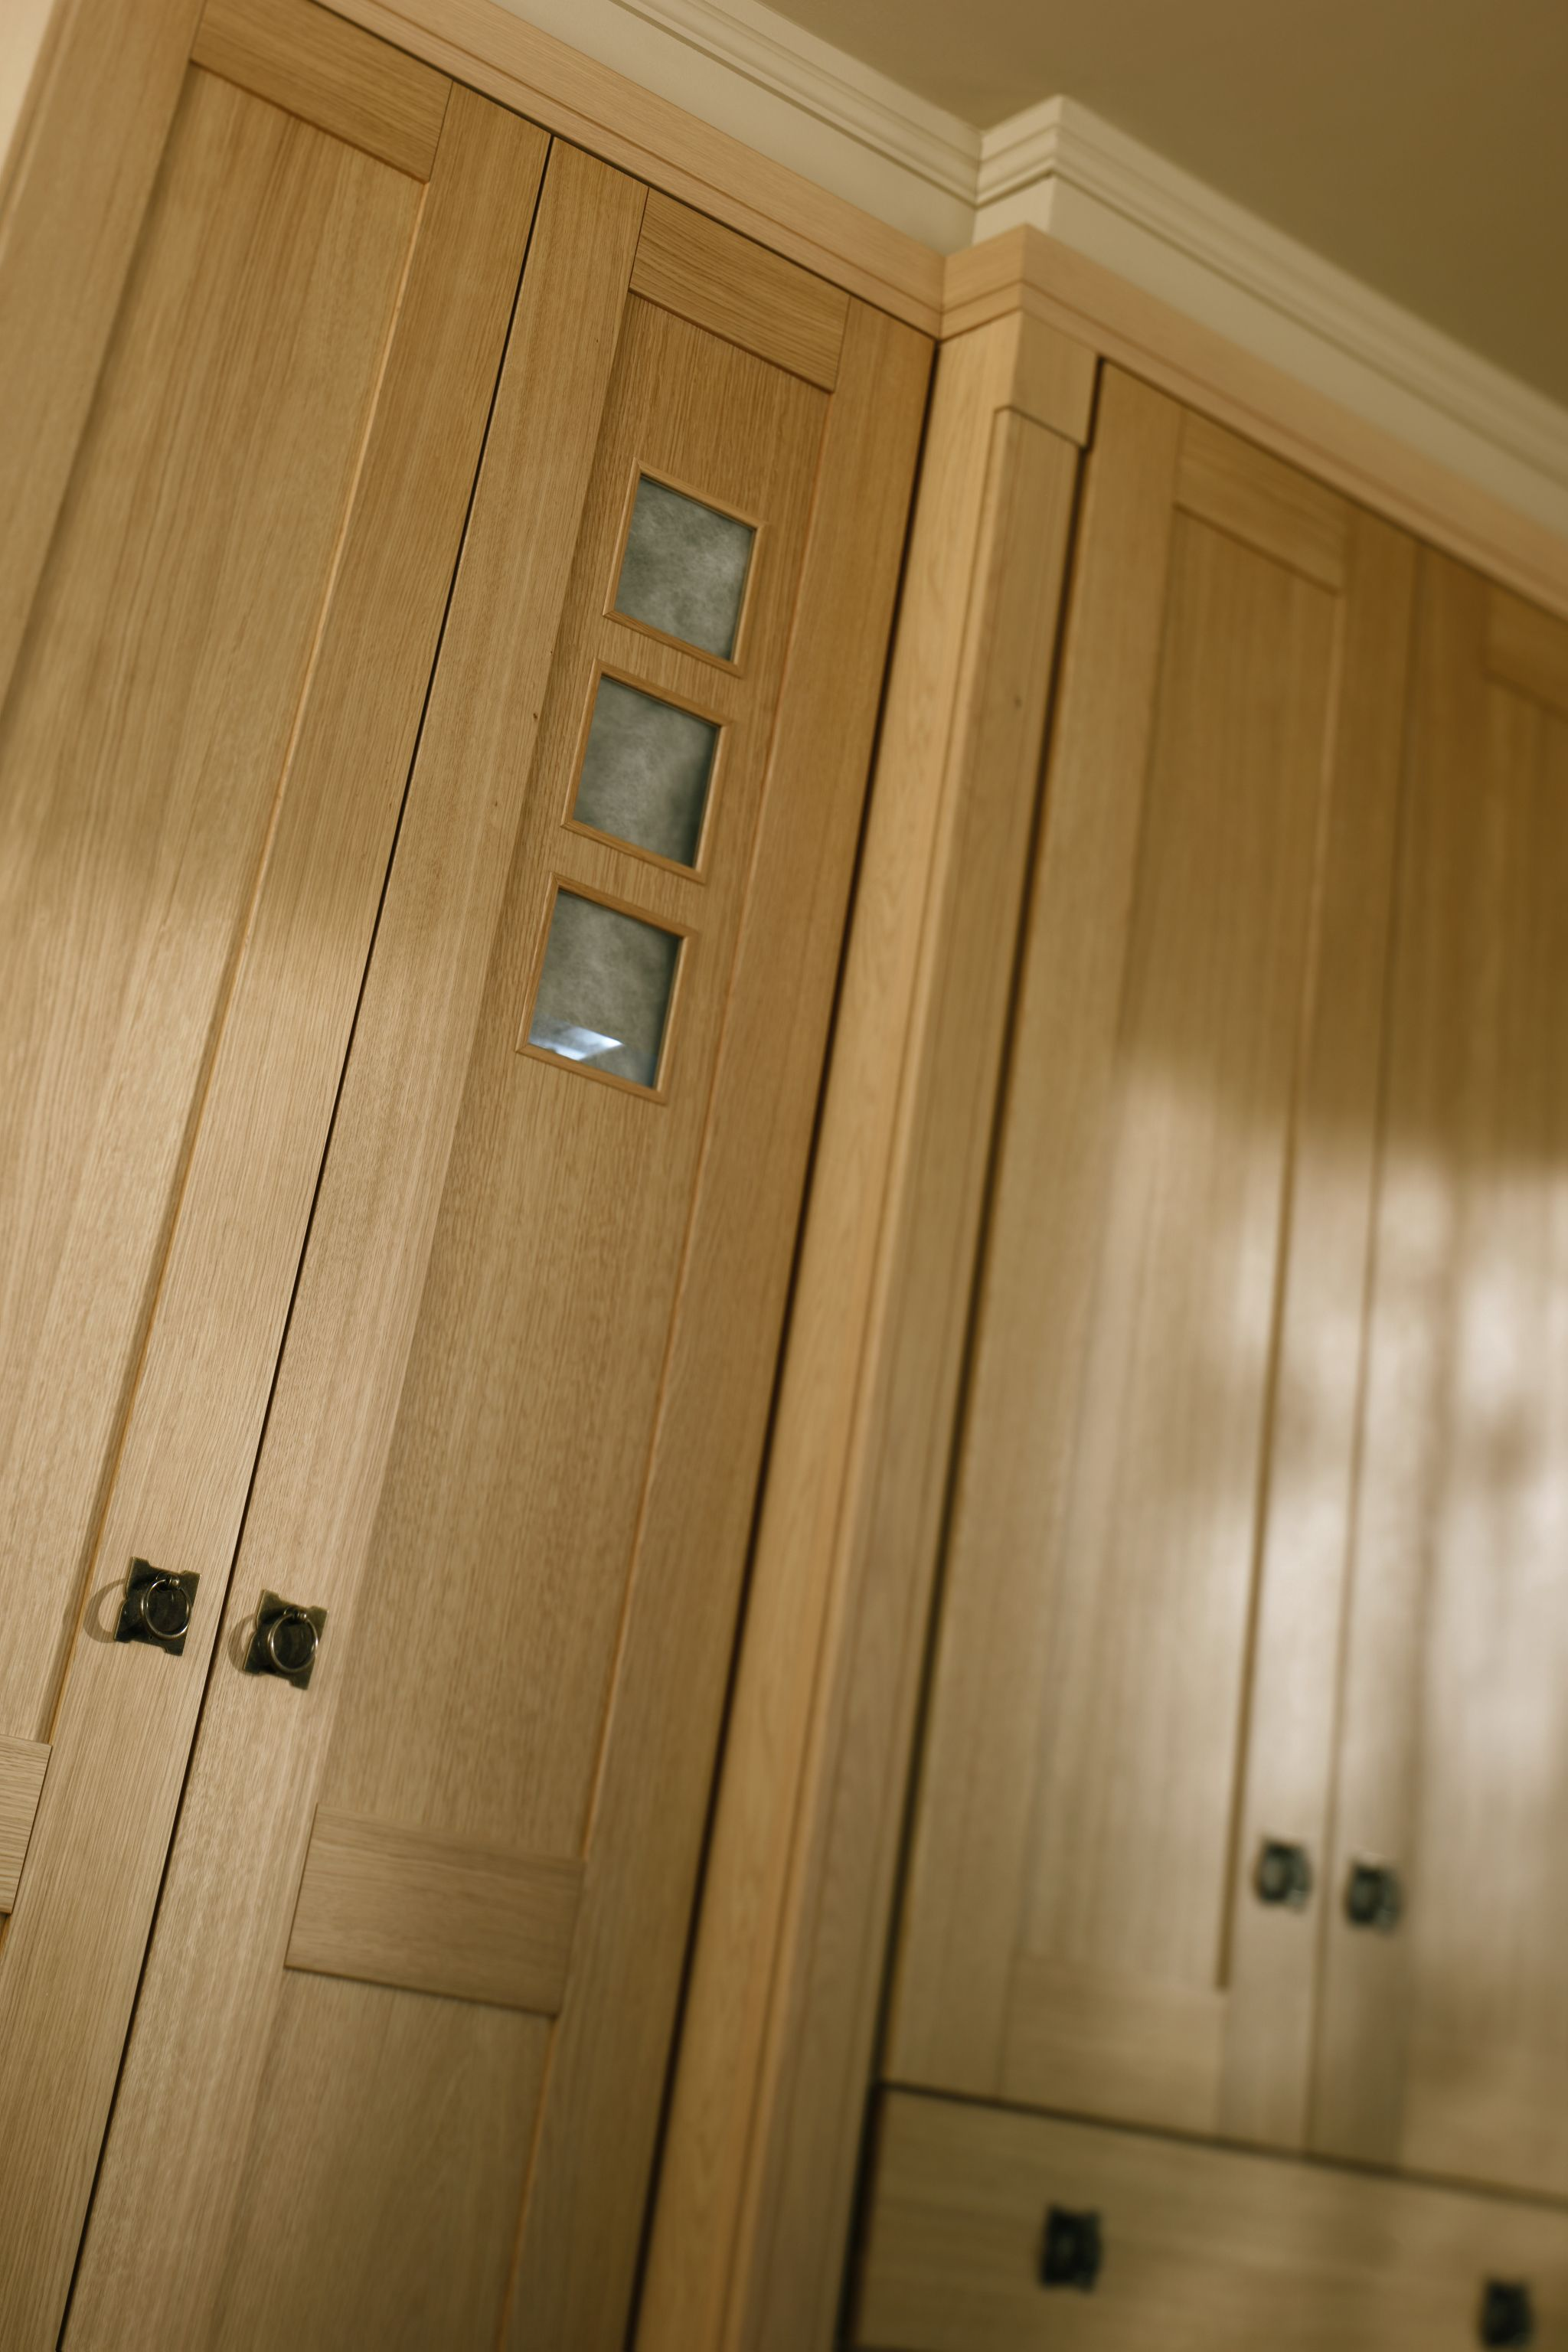 Shaker Solid Oak Fitted Wardrobe Doors Are Manufactured From Real Oak The Frame Of The Doors Are Ma Fitted Wardrobe Doors Built In Cupboards Built In Wardrobe